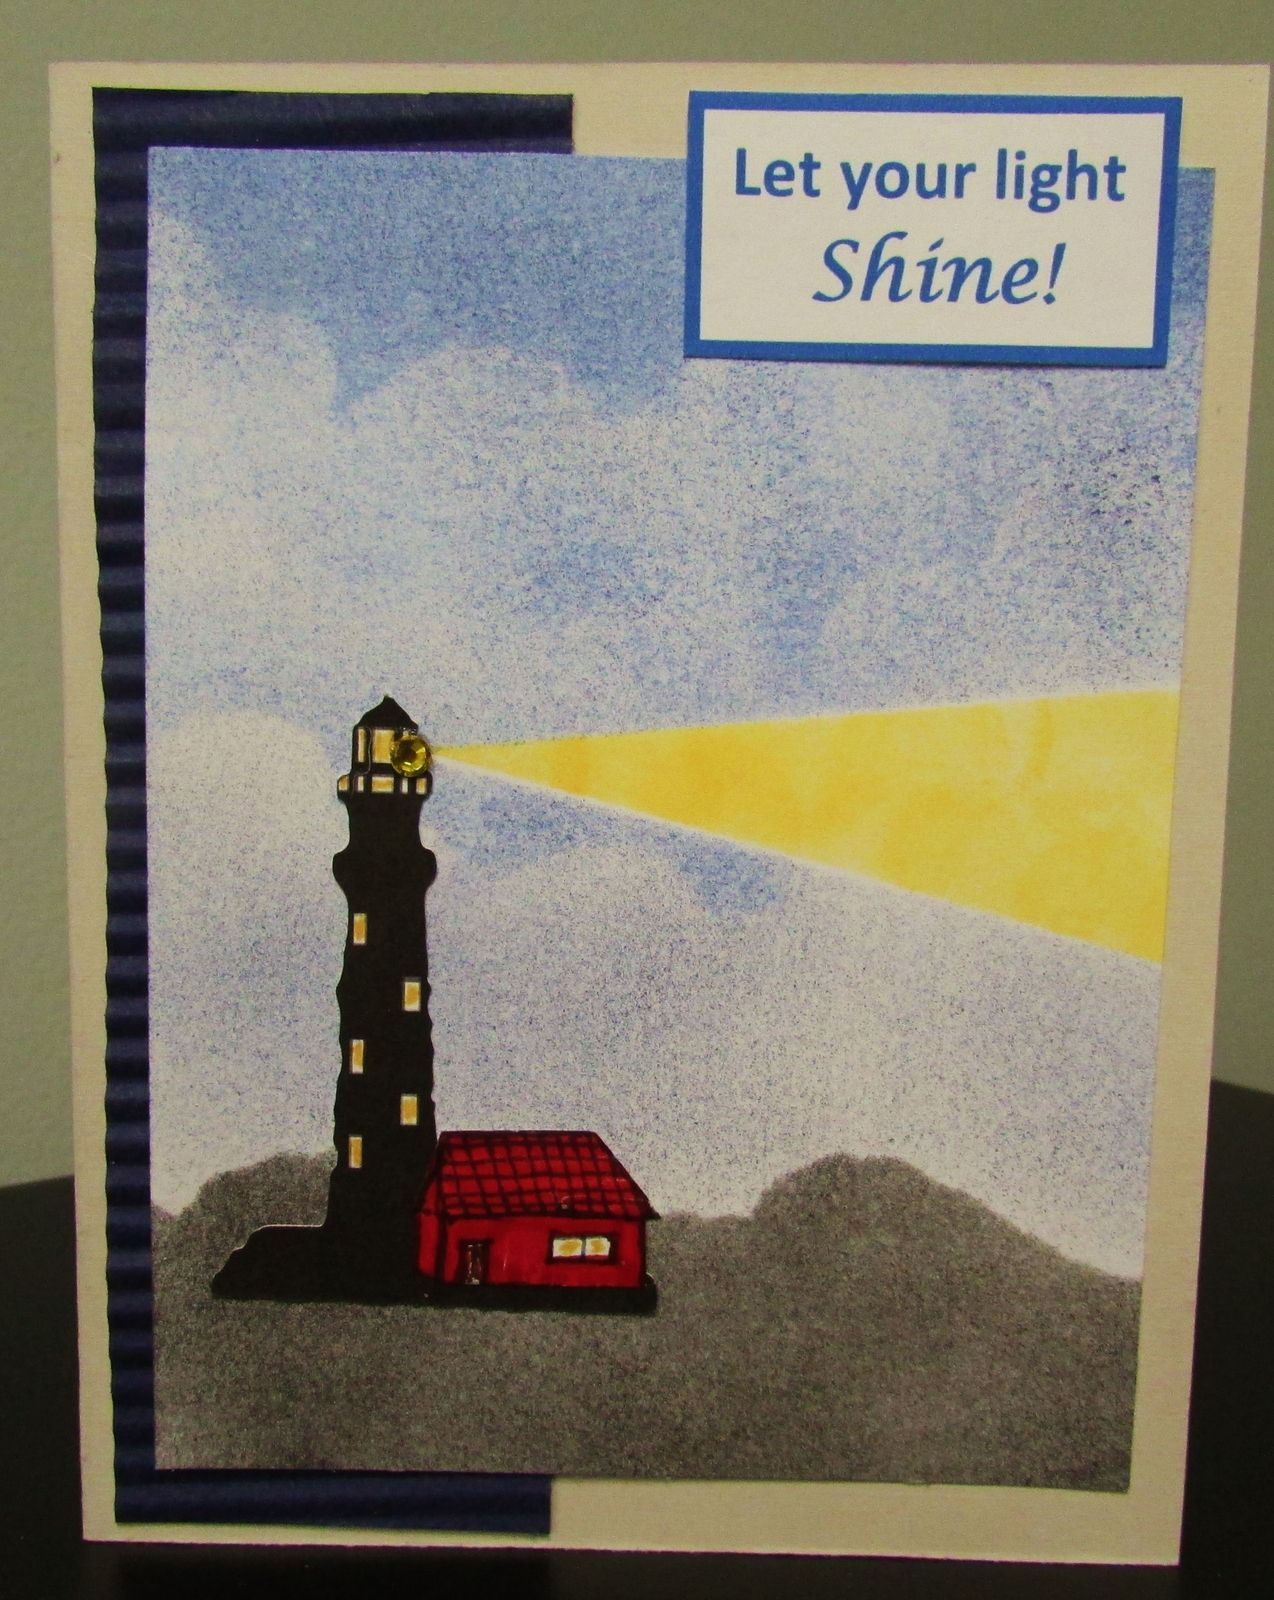 Encouragement cards let your light shine light house theme encouragement cards let your light shine light house theme greeting cards kristyandbryce Choice Image